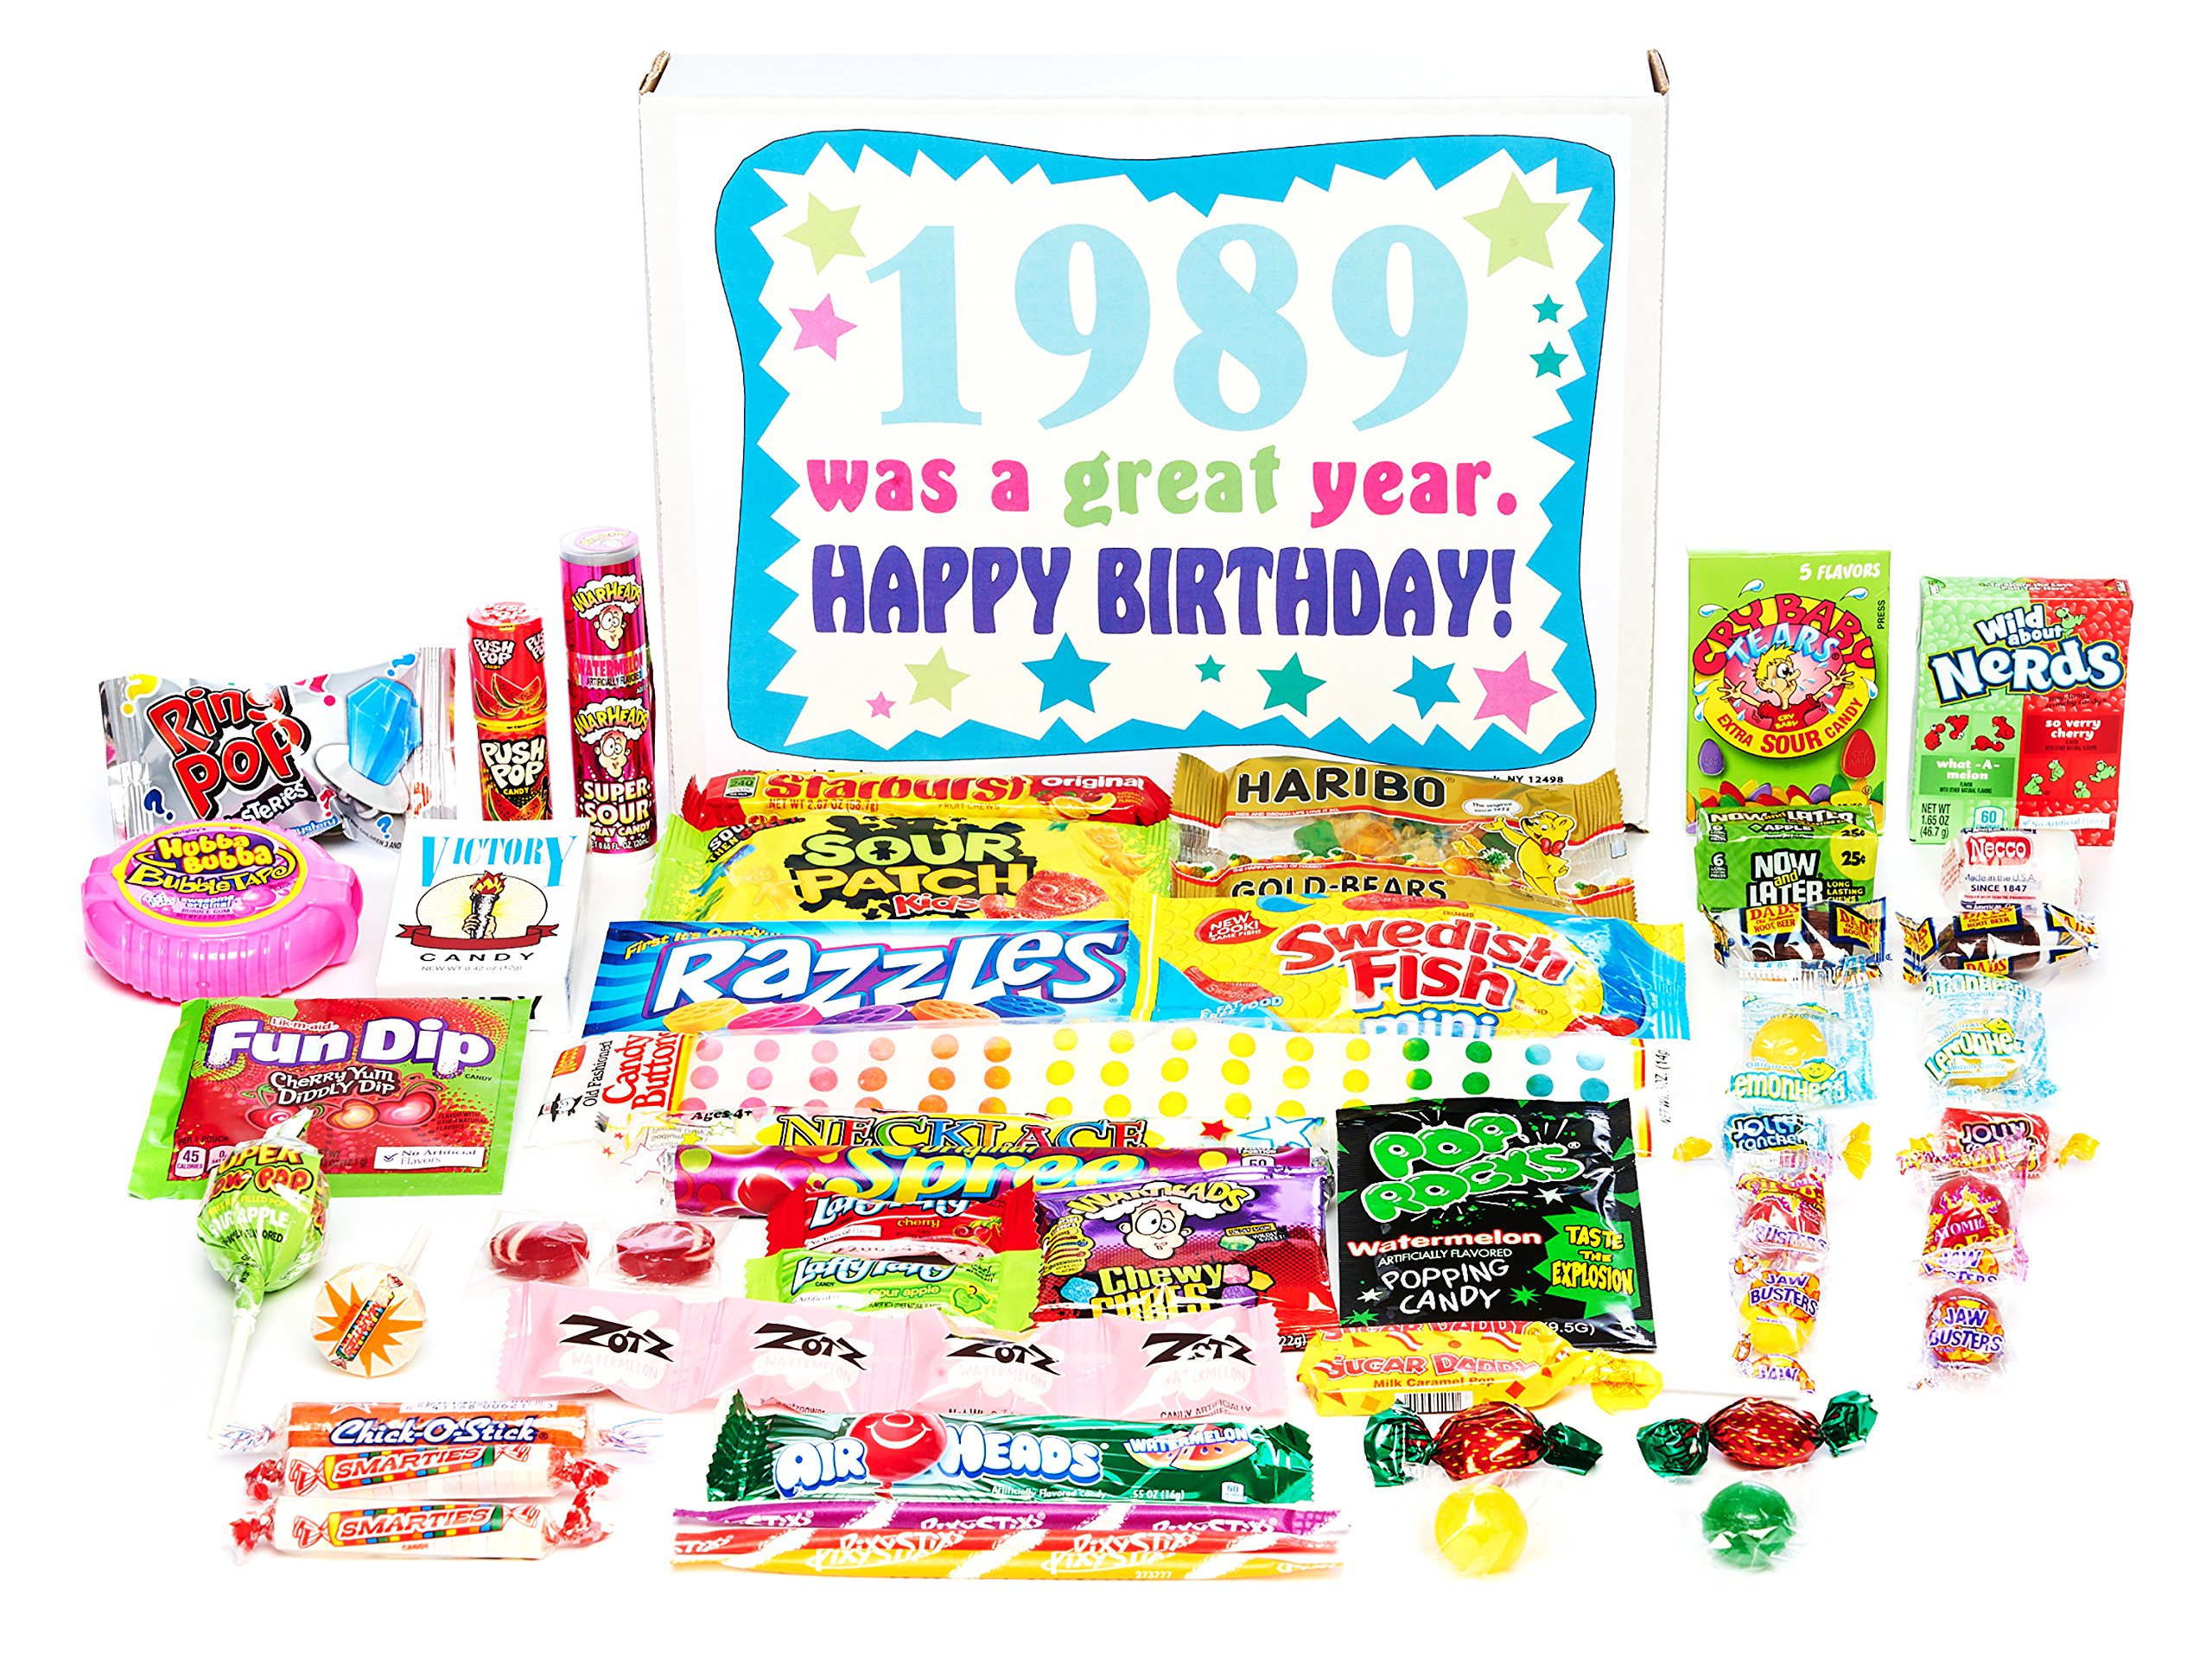 Woodstock Candy ~ 1989 30th Birthday Gift Box of Nostalgic Retro Candy Mix from Childhood for 30 Year Old Man or Woman Born 1989